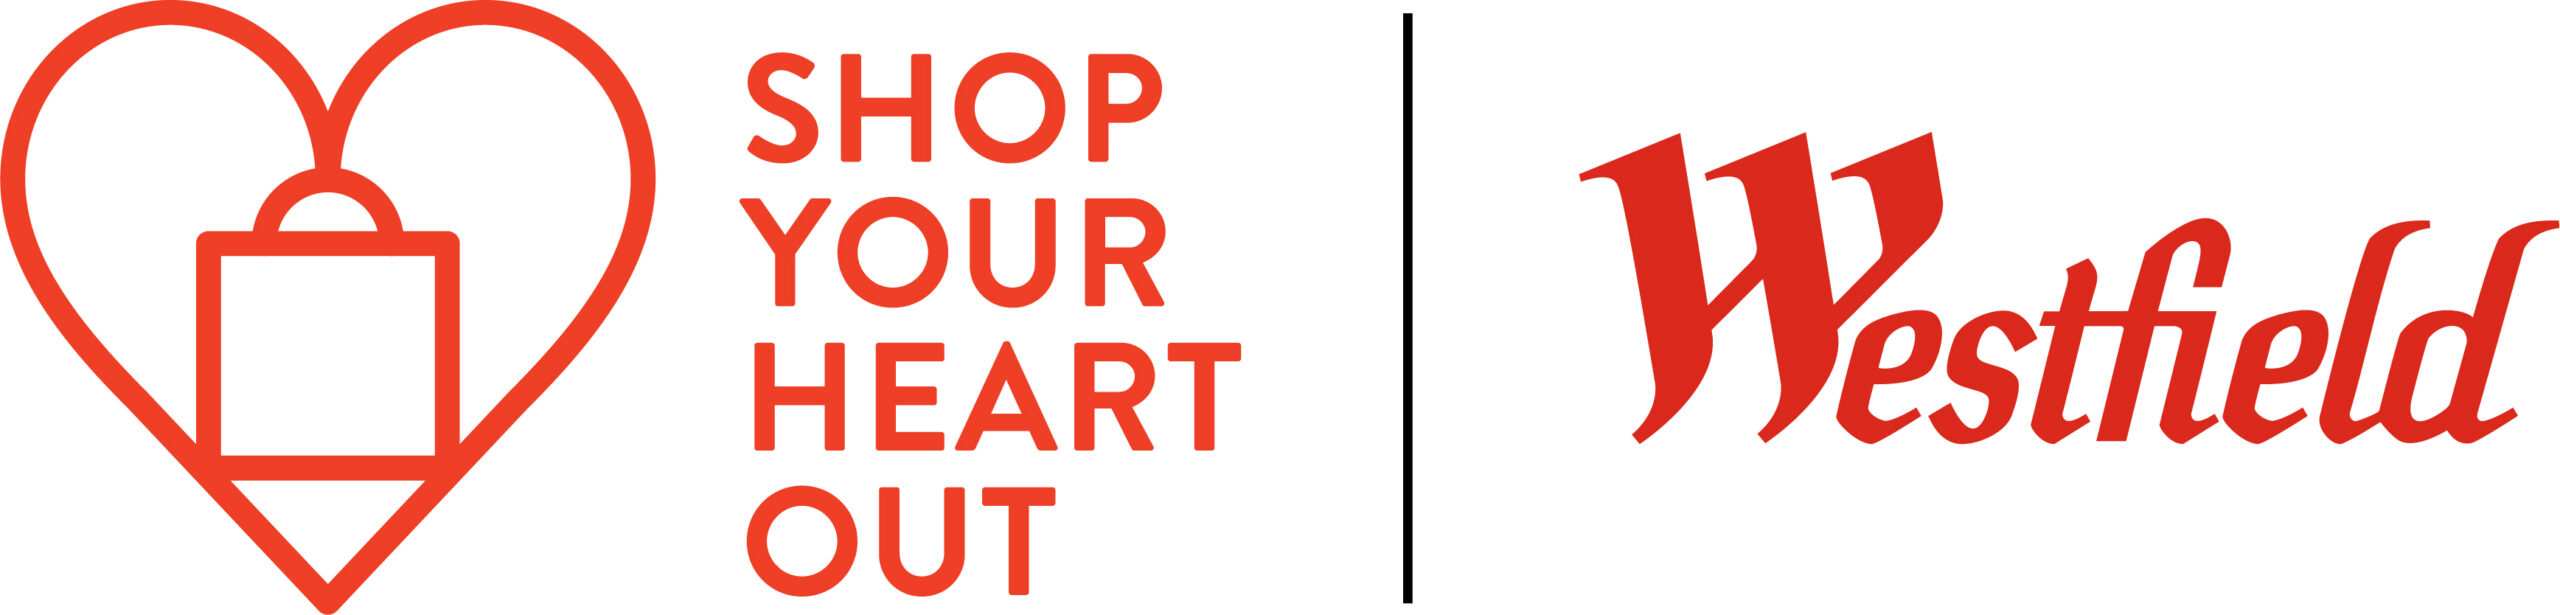 Westfield Shop Your Heart Out Banner Image